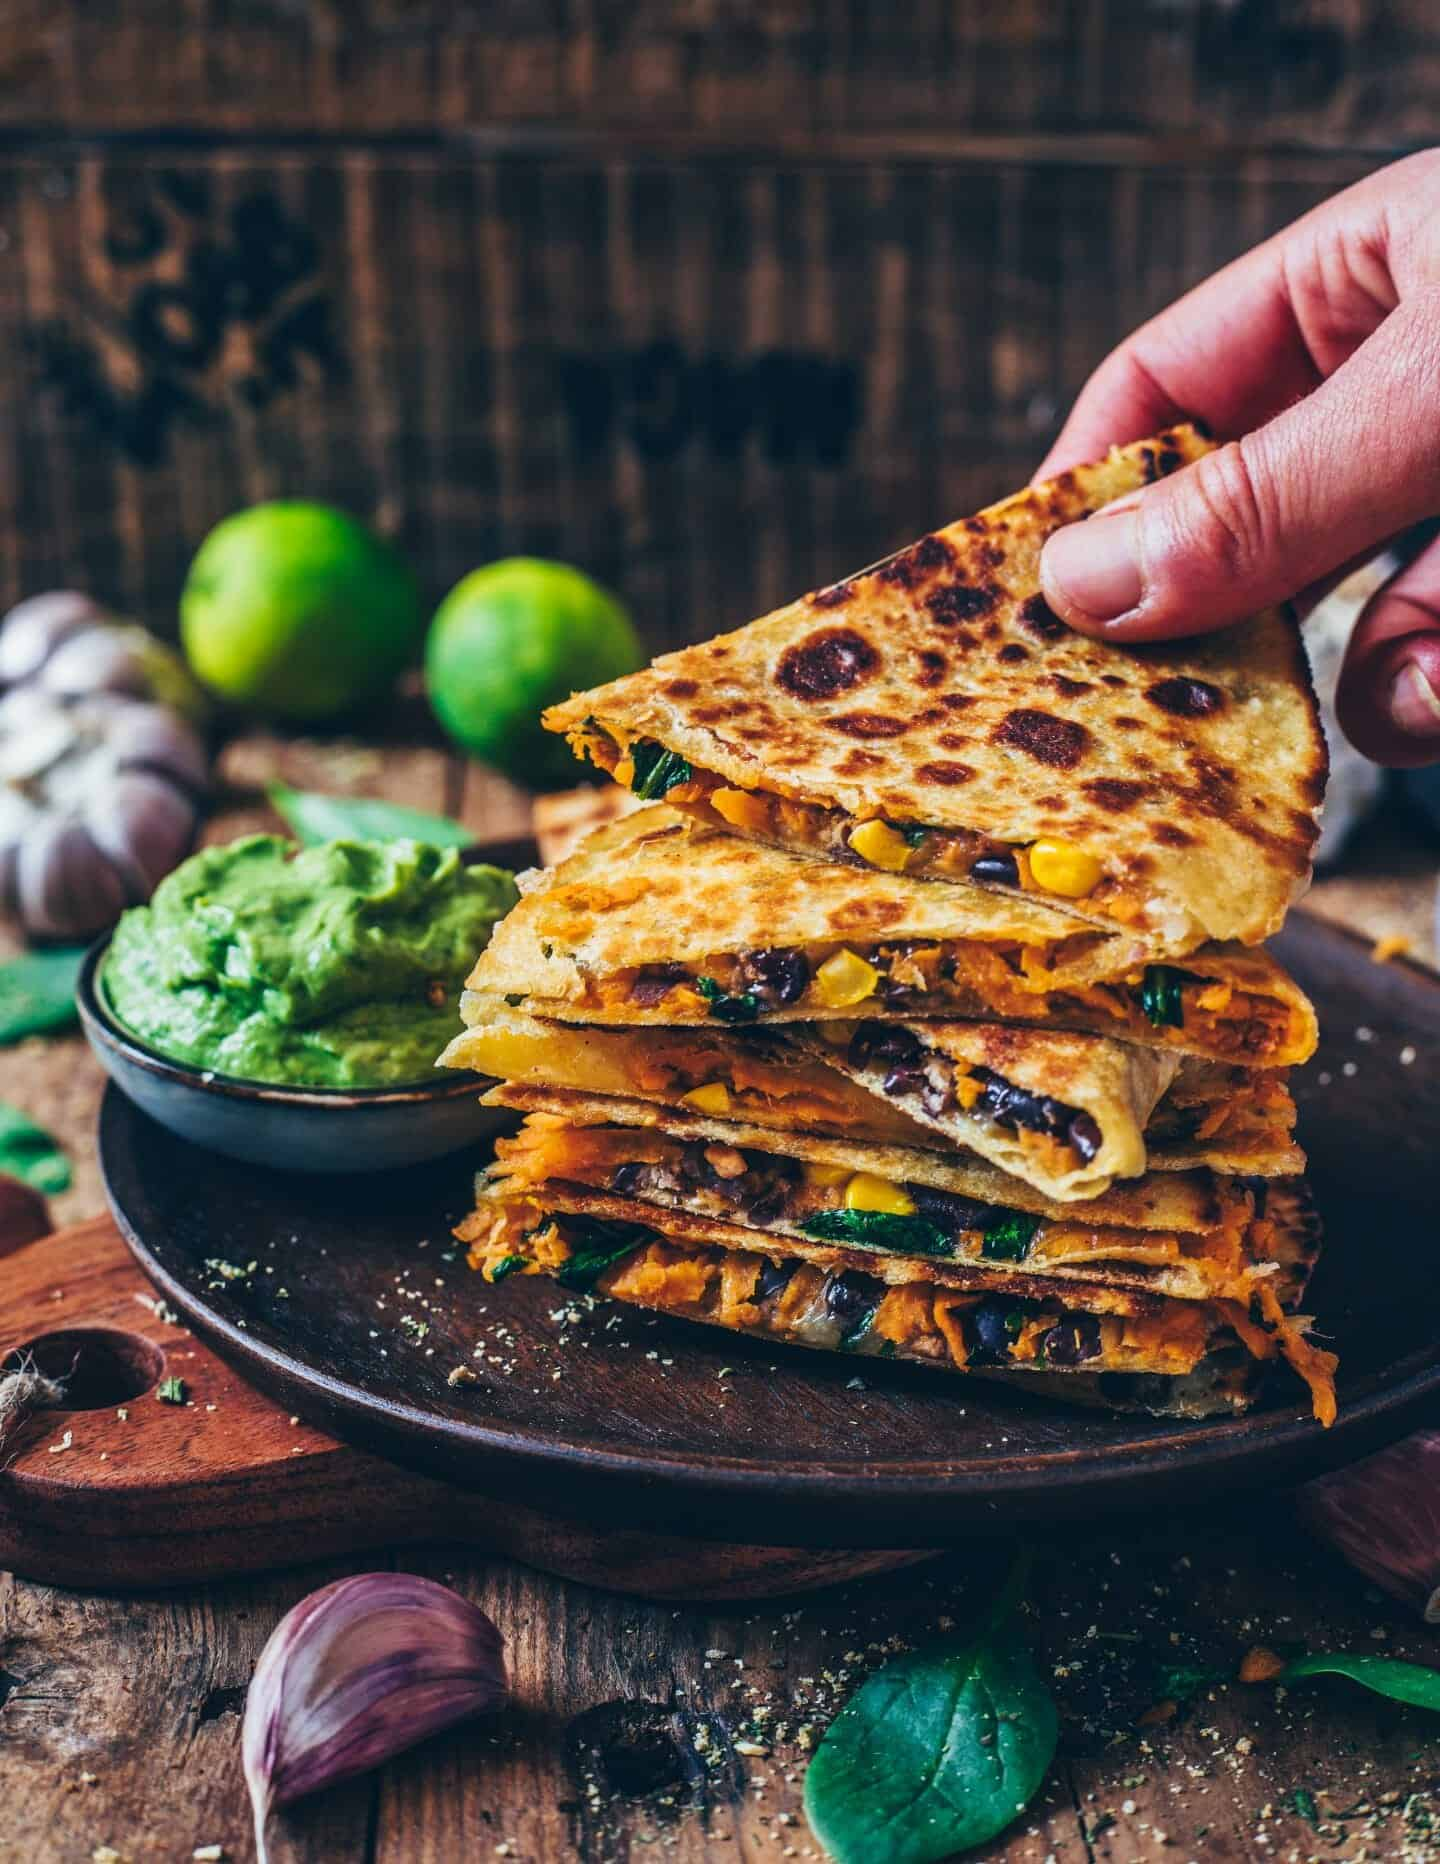 These easy Vegan Sweet Potato Quesadillas loaded with blacks bean, corn and dairy-free cheese make the perfect quick meal or snack. They're gluten-free, healthy, flavorful, cheesy and very simple to make.